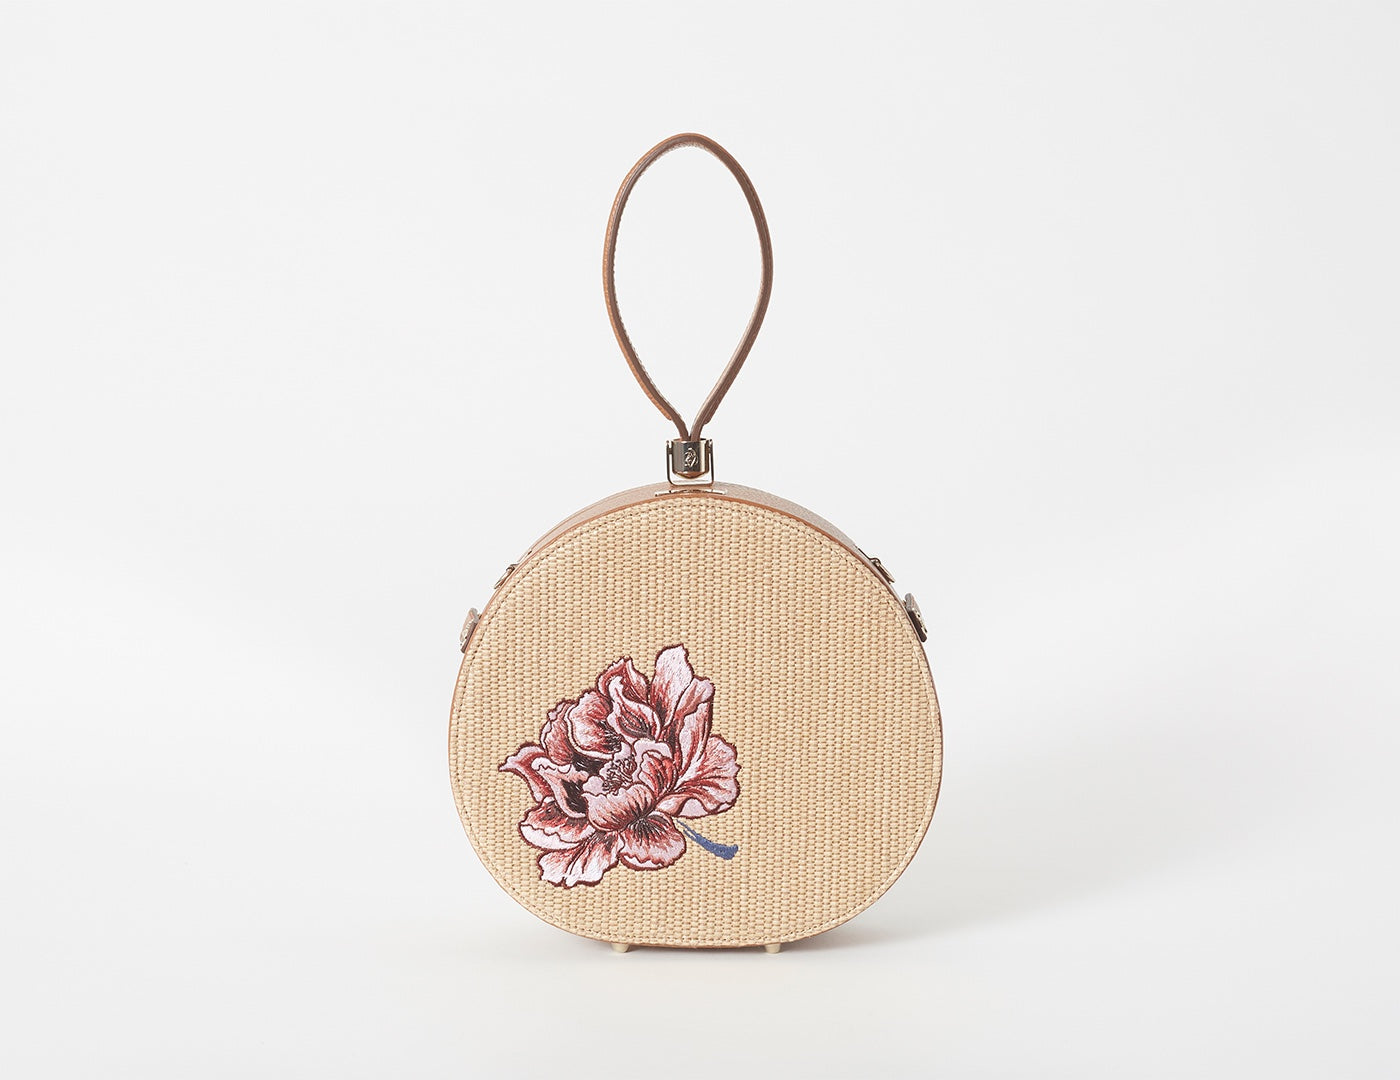 Demi Poppy Round Leather Bag, Embroidered Straw